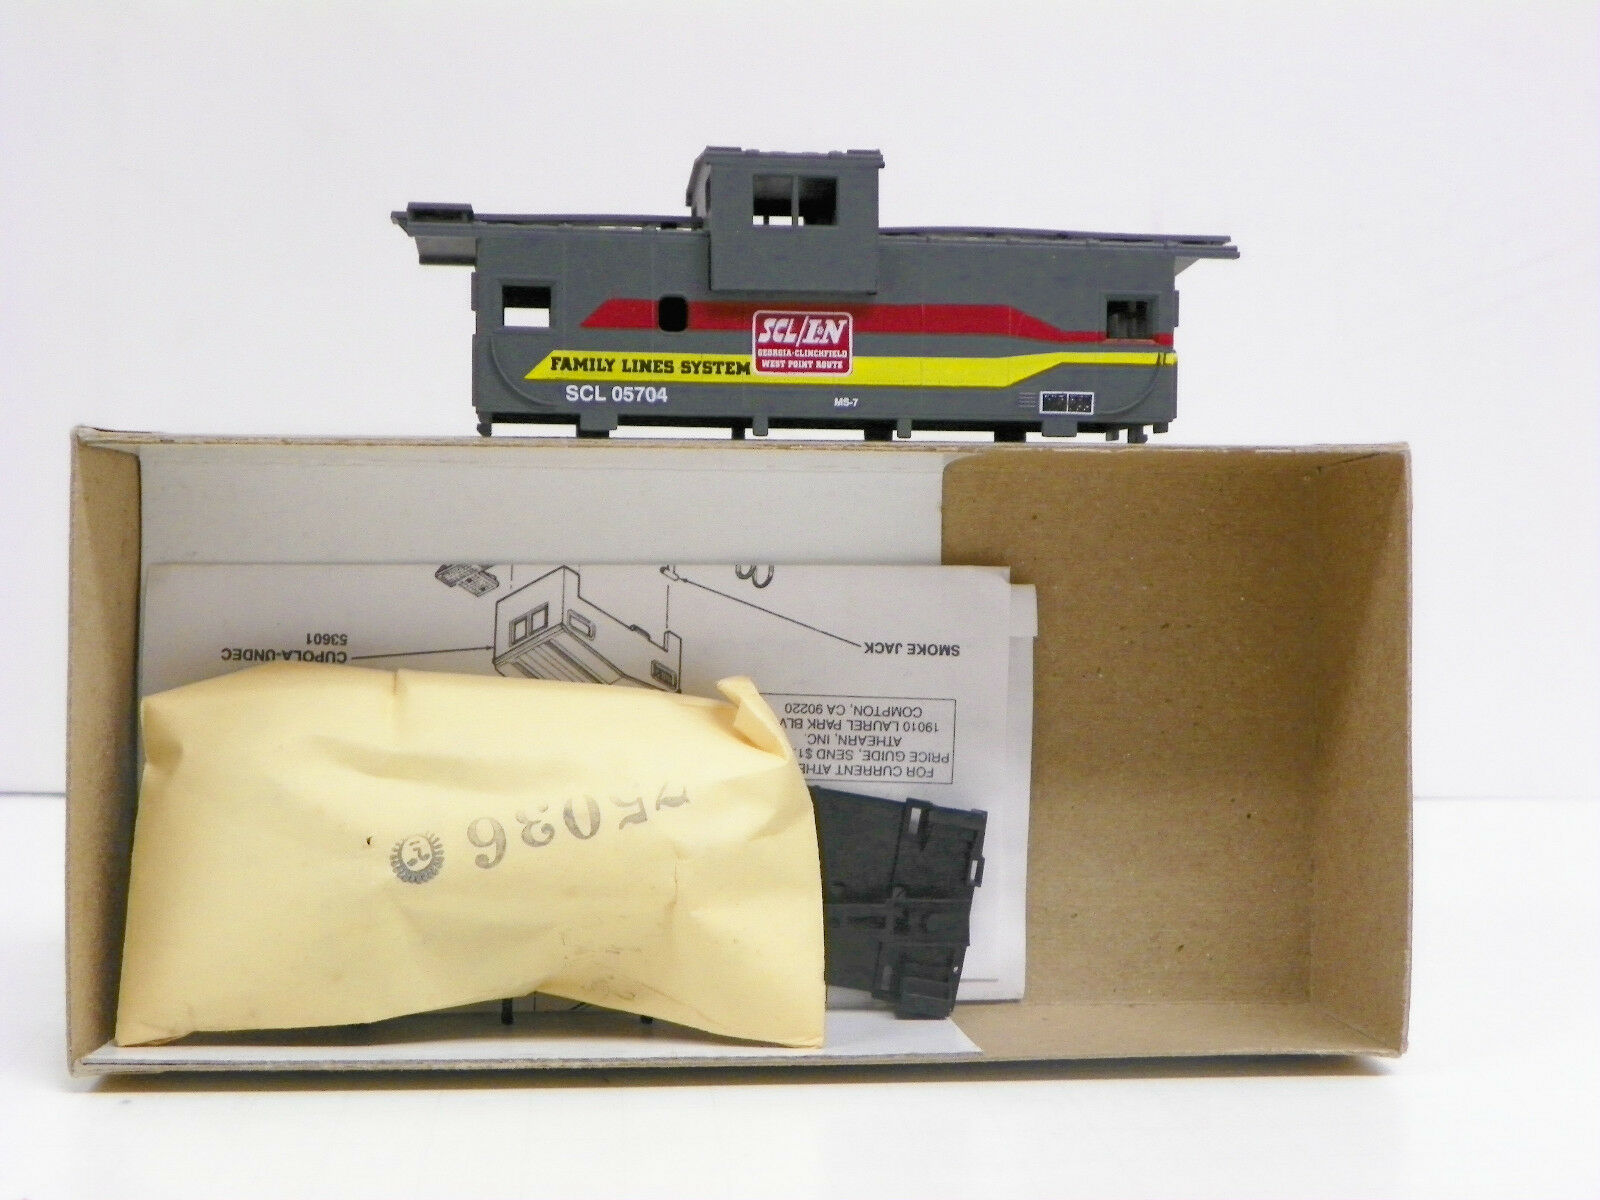 BEV-BEL ATHEARN HO U A FAMILY LINES SYSTEM  WEST POINT ROUTE  29' W. V. CABOOSE